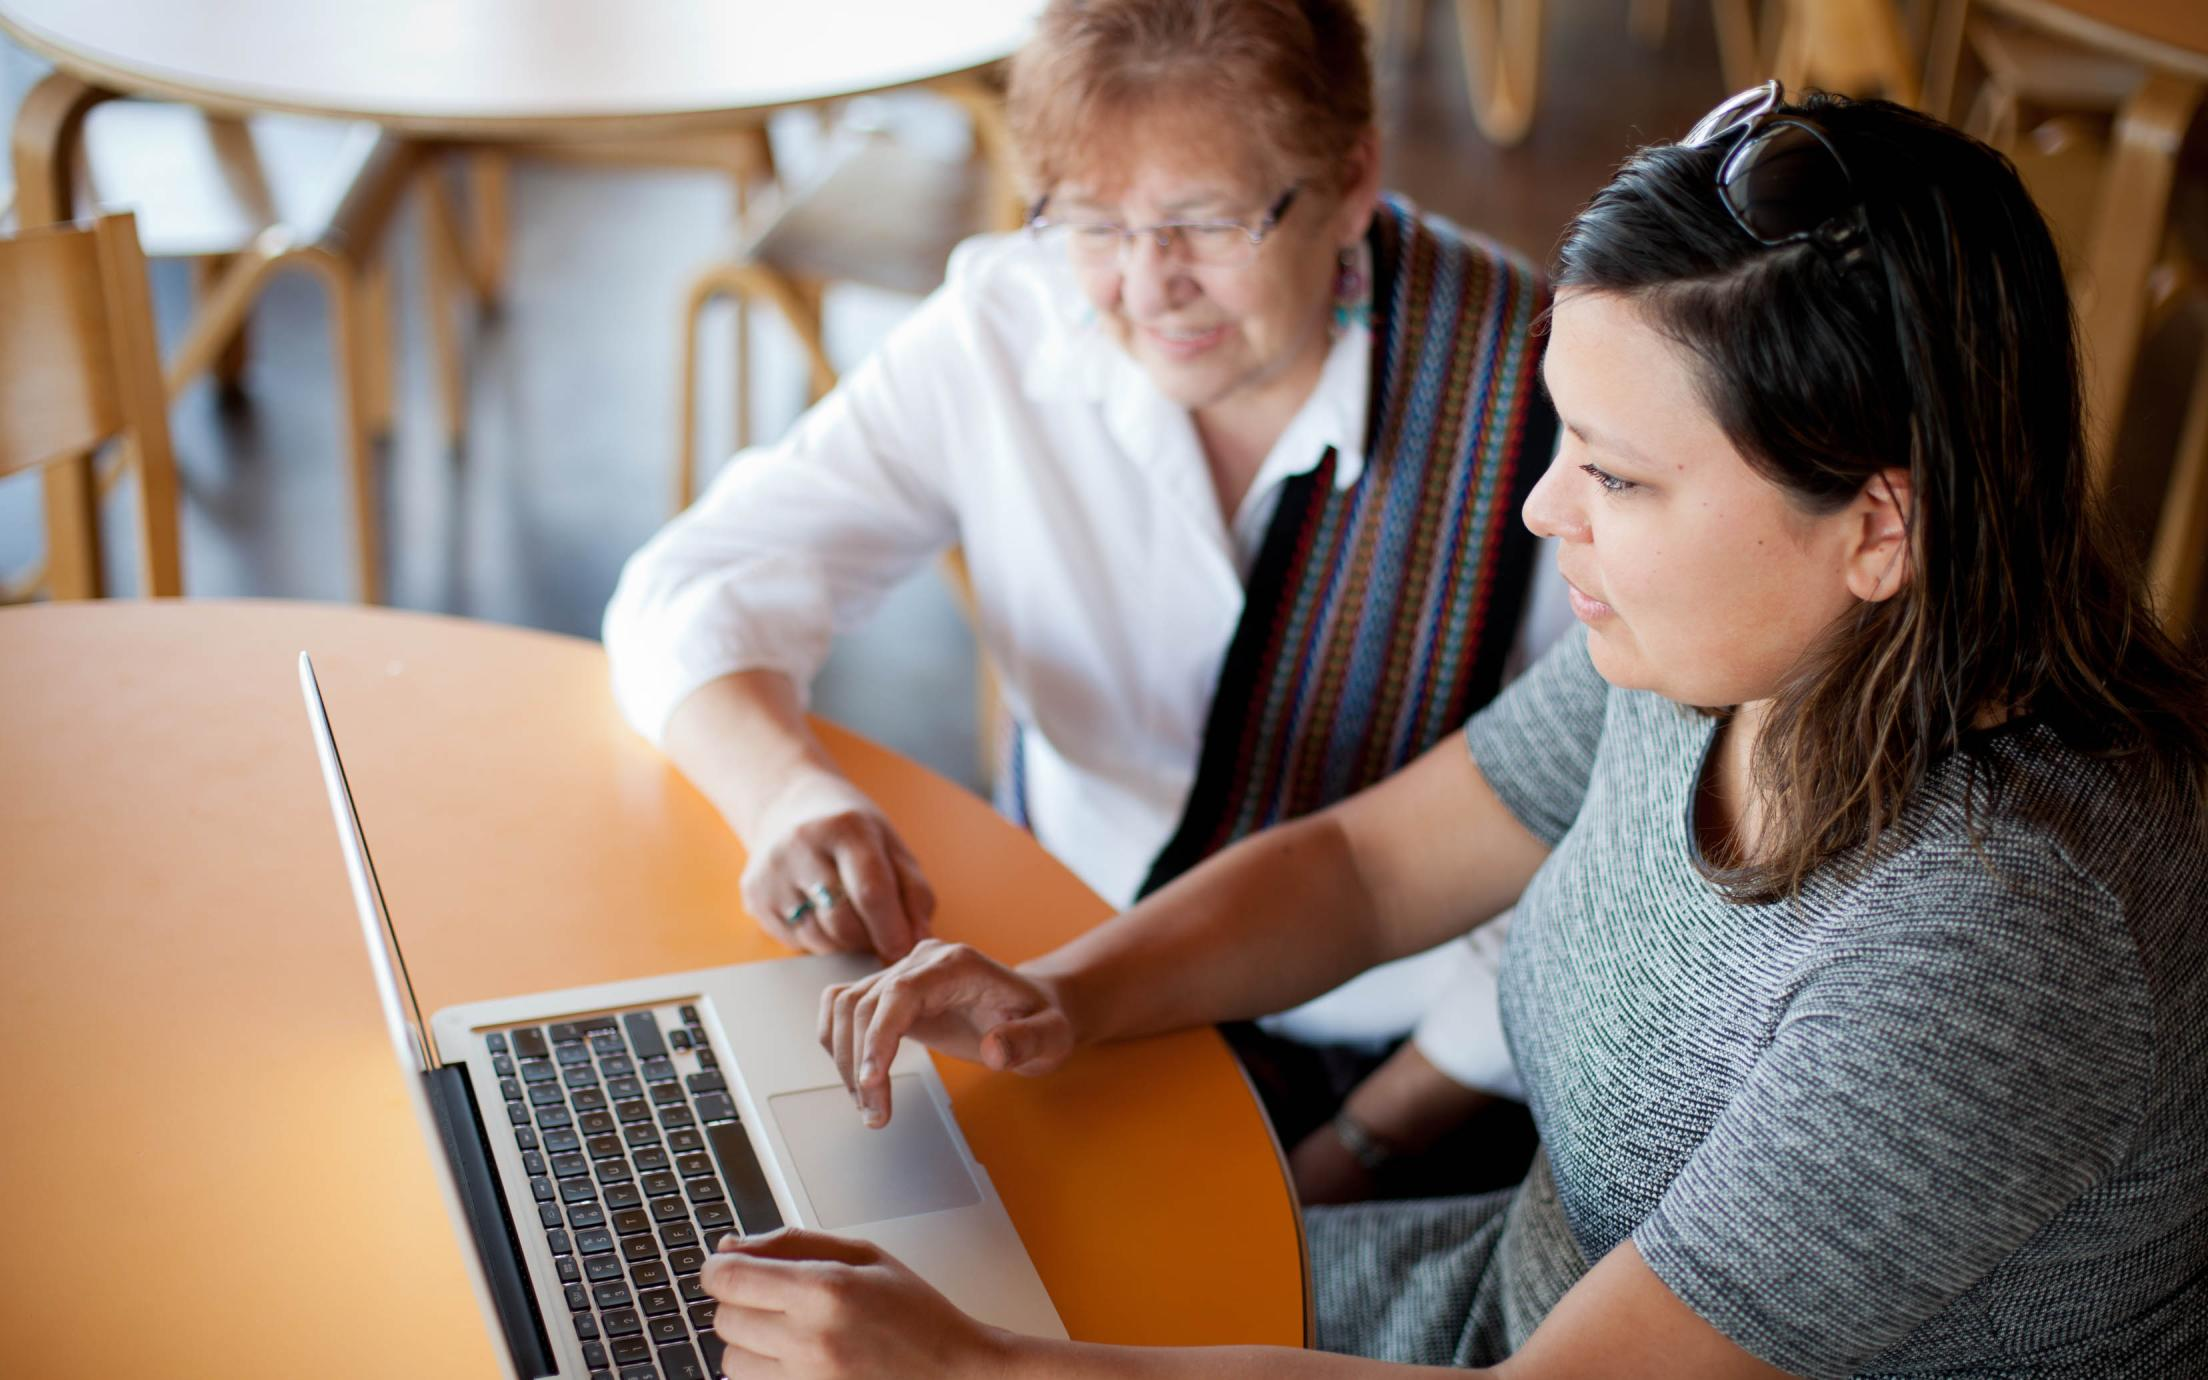 The First Nations Housing Manager providing advice to an elderly woman